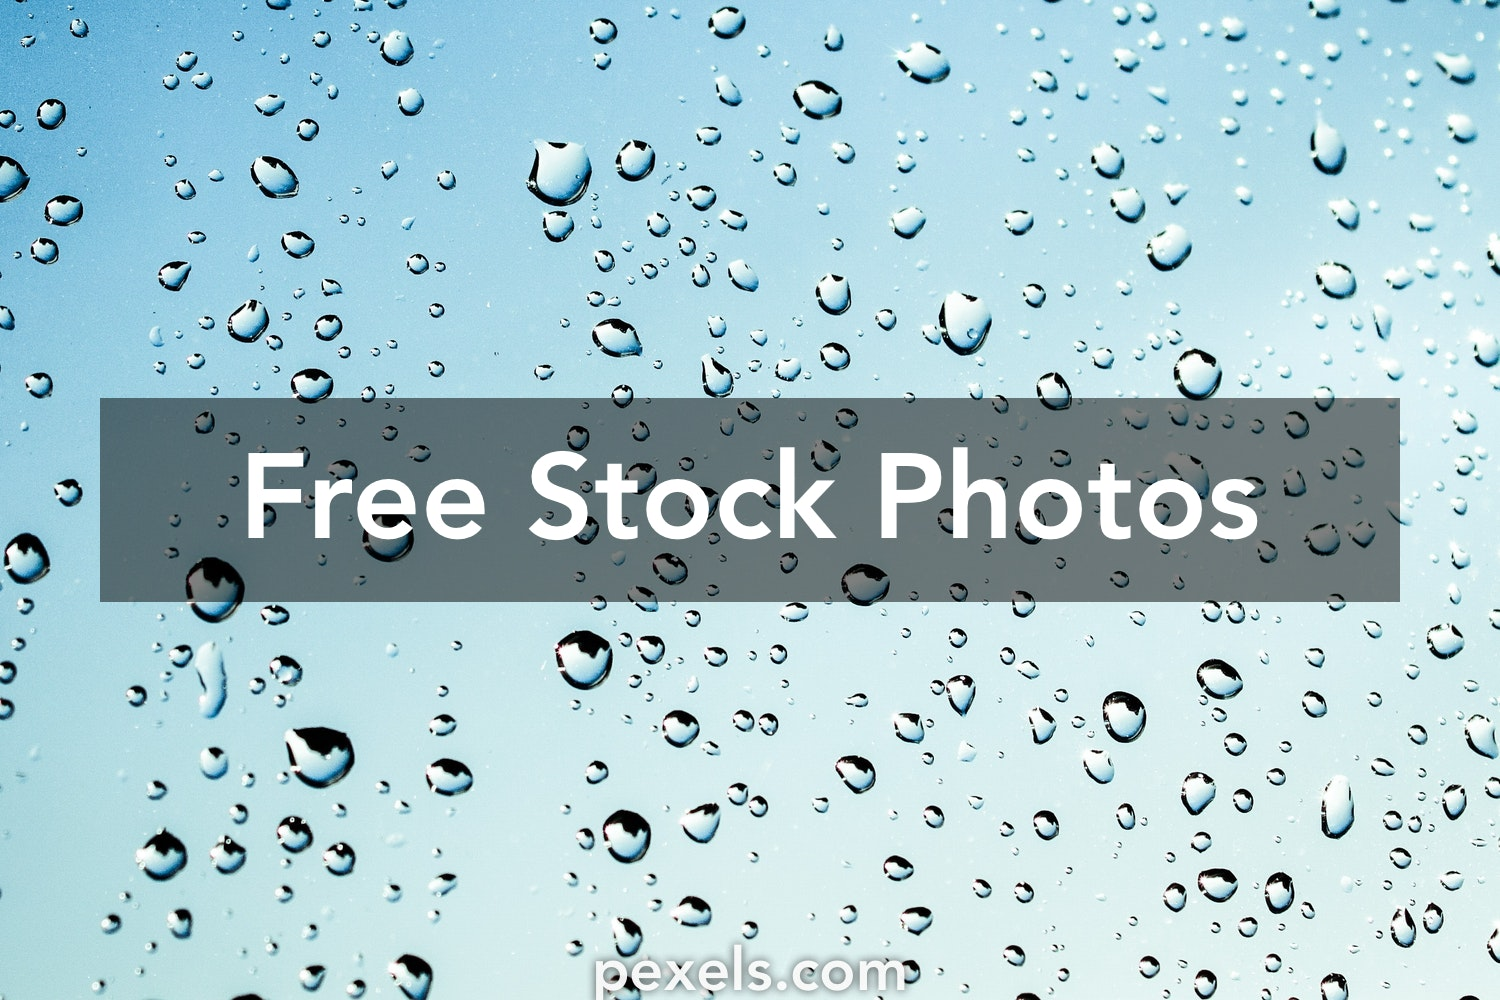 500 Beautiful Raindrops S Pexels · Free Stock S